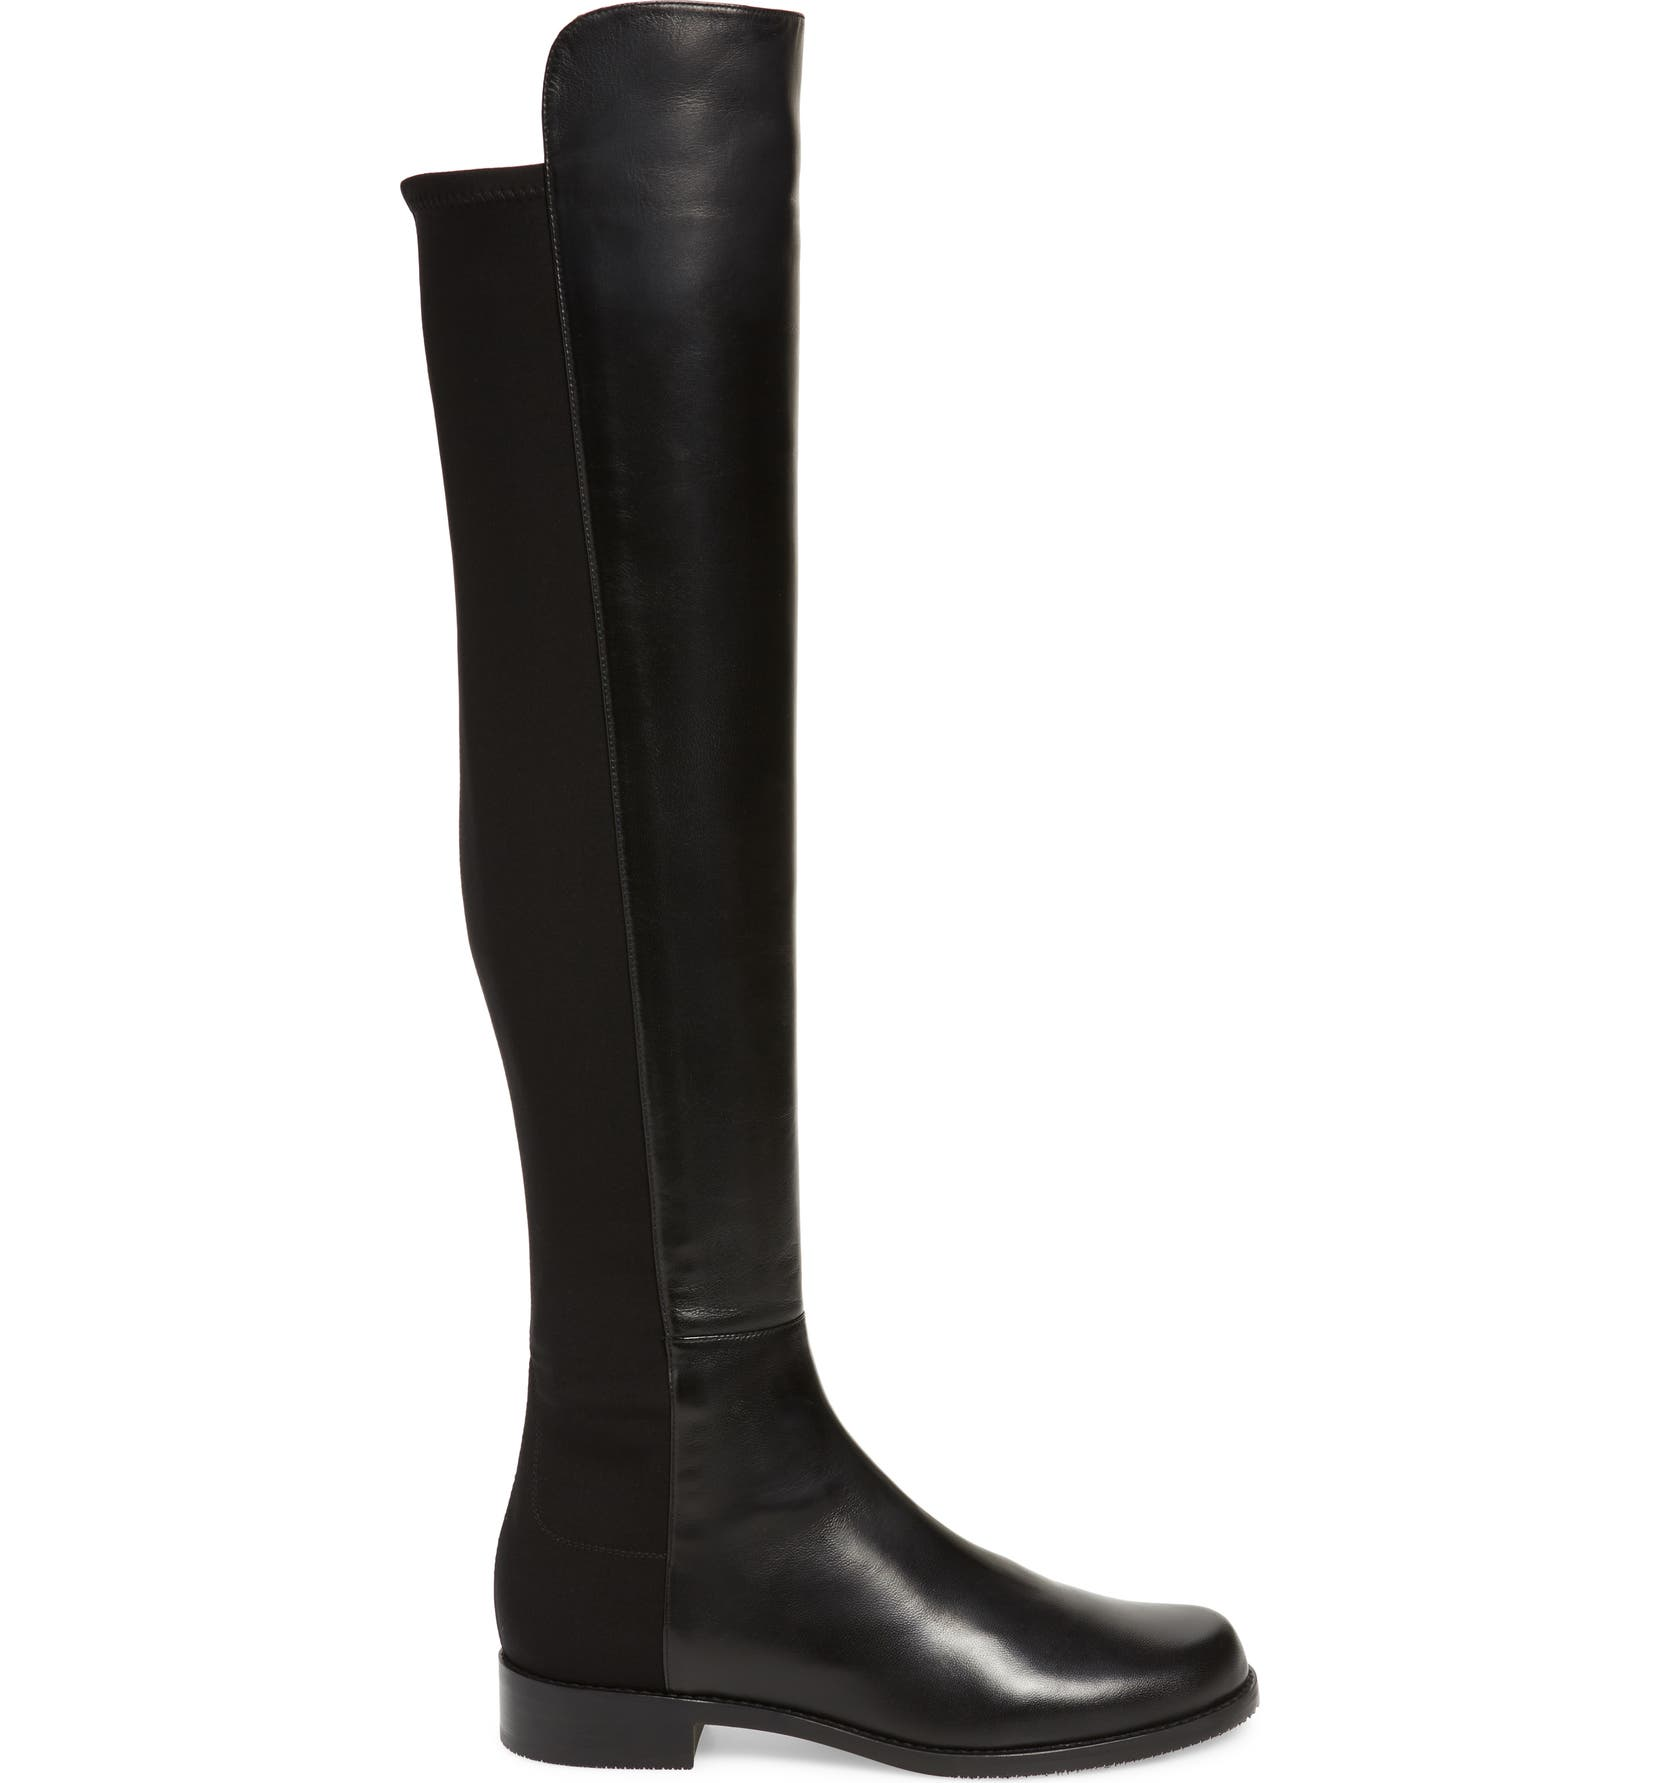 5050 Over The Knee Leather Boot Stuart Weitzman 5050 Flat Boots Shoes